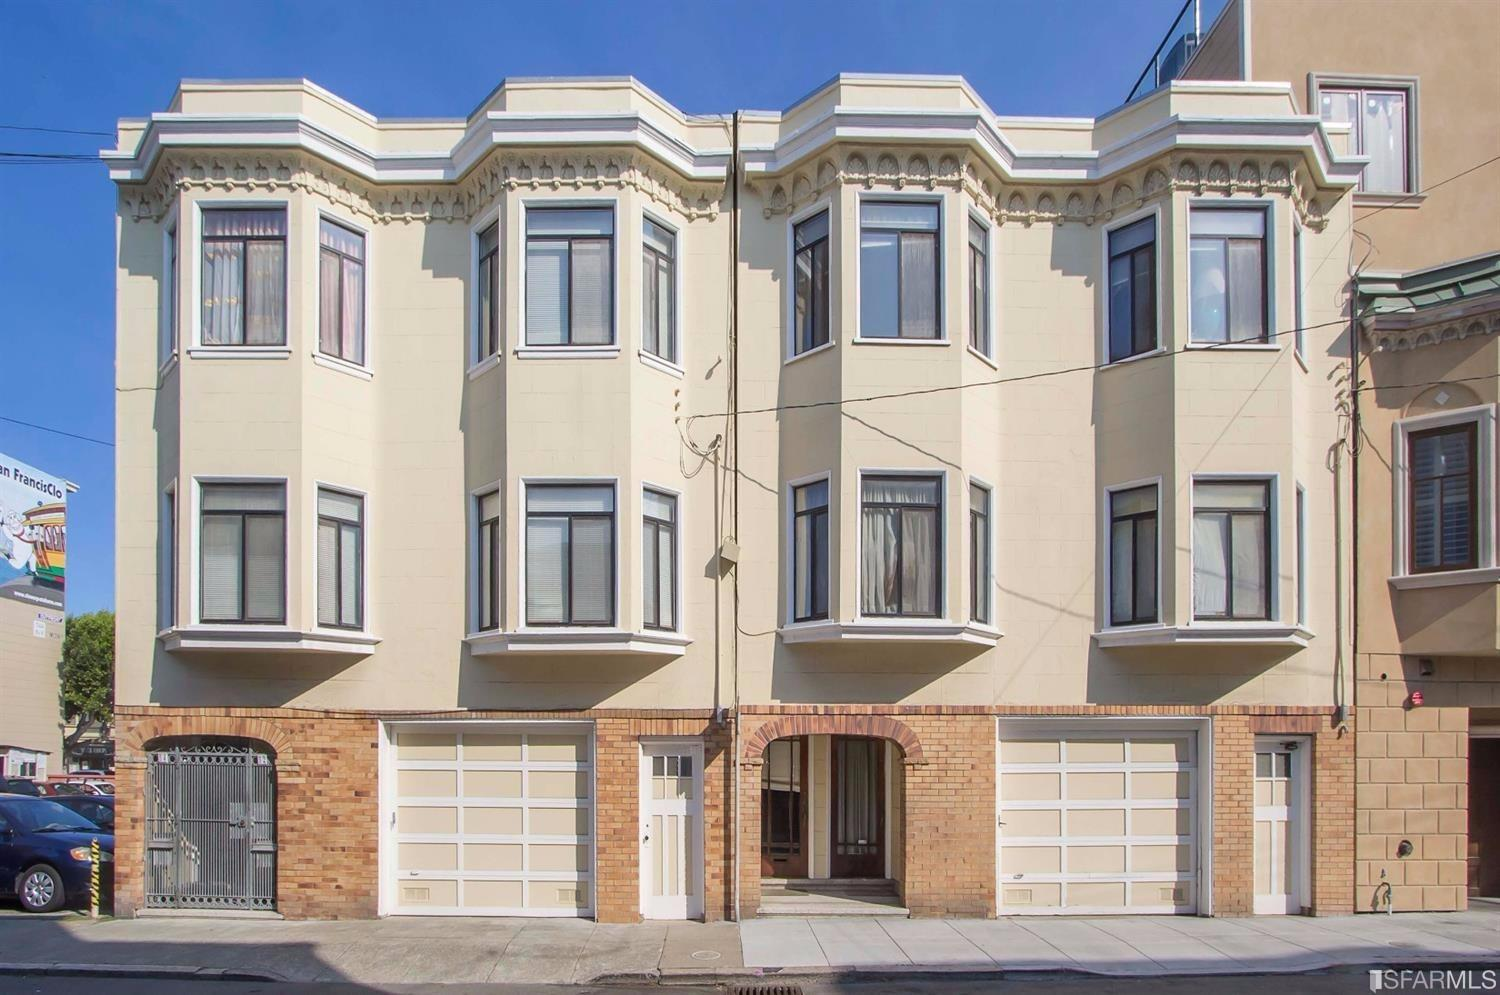 Marina / Cow Hollow Property Gets $1,200,000 More Than Asking